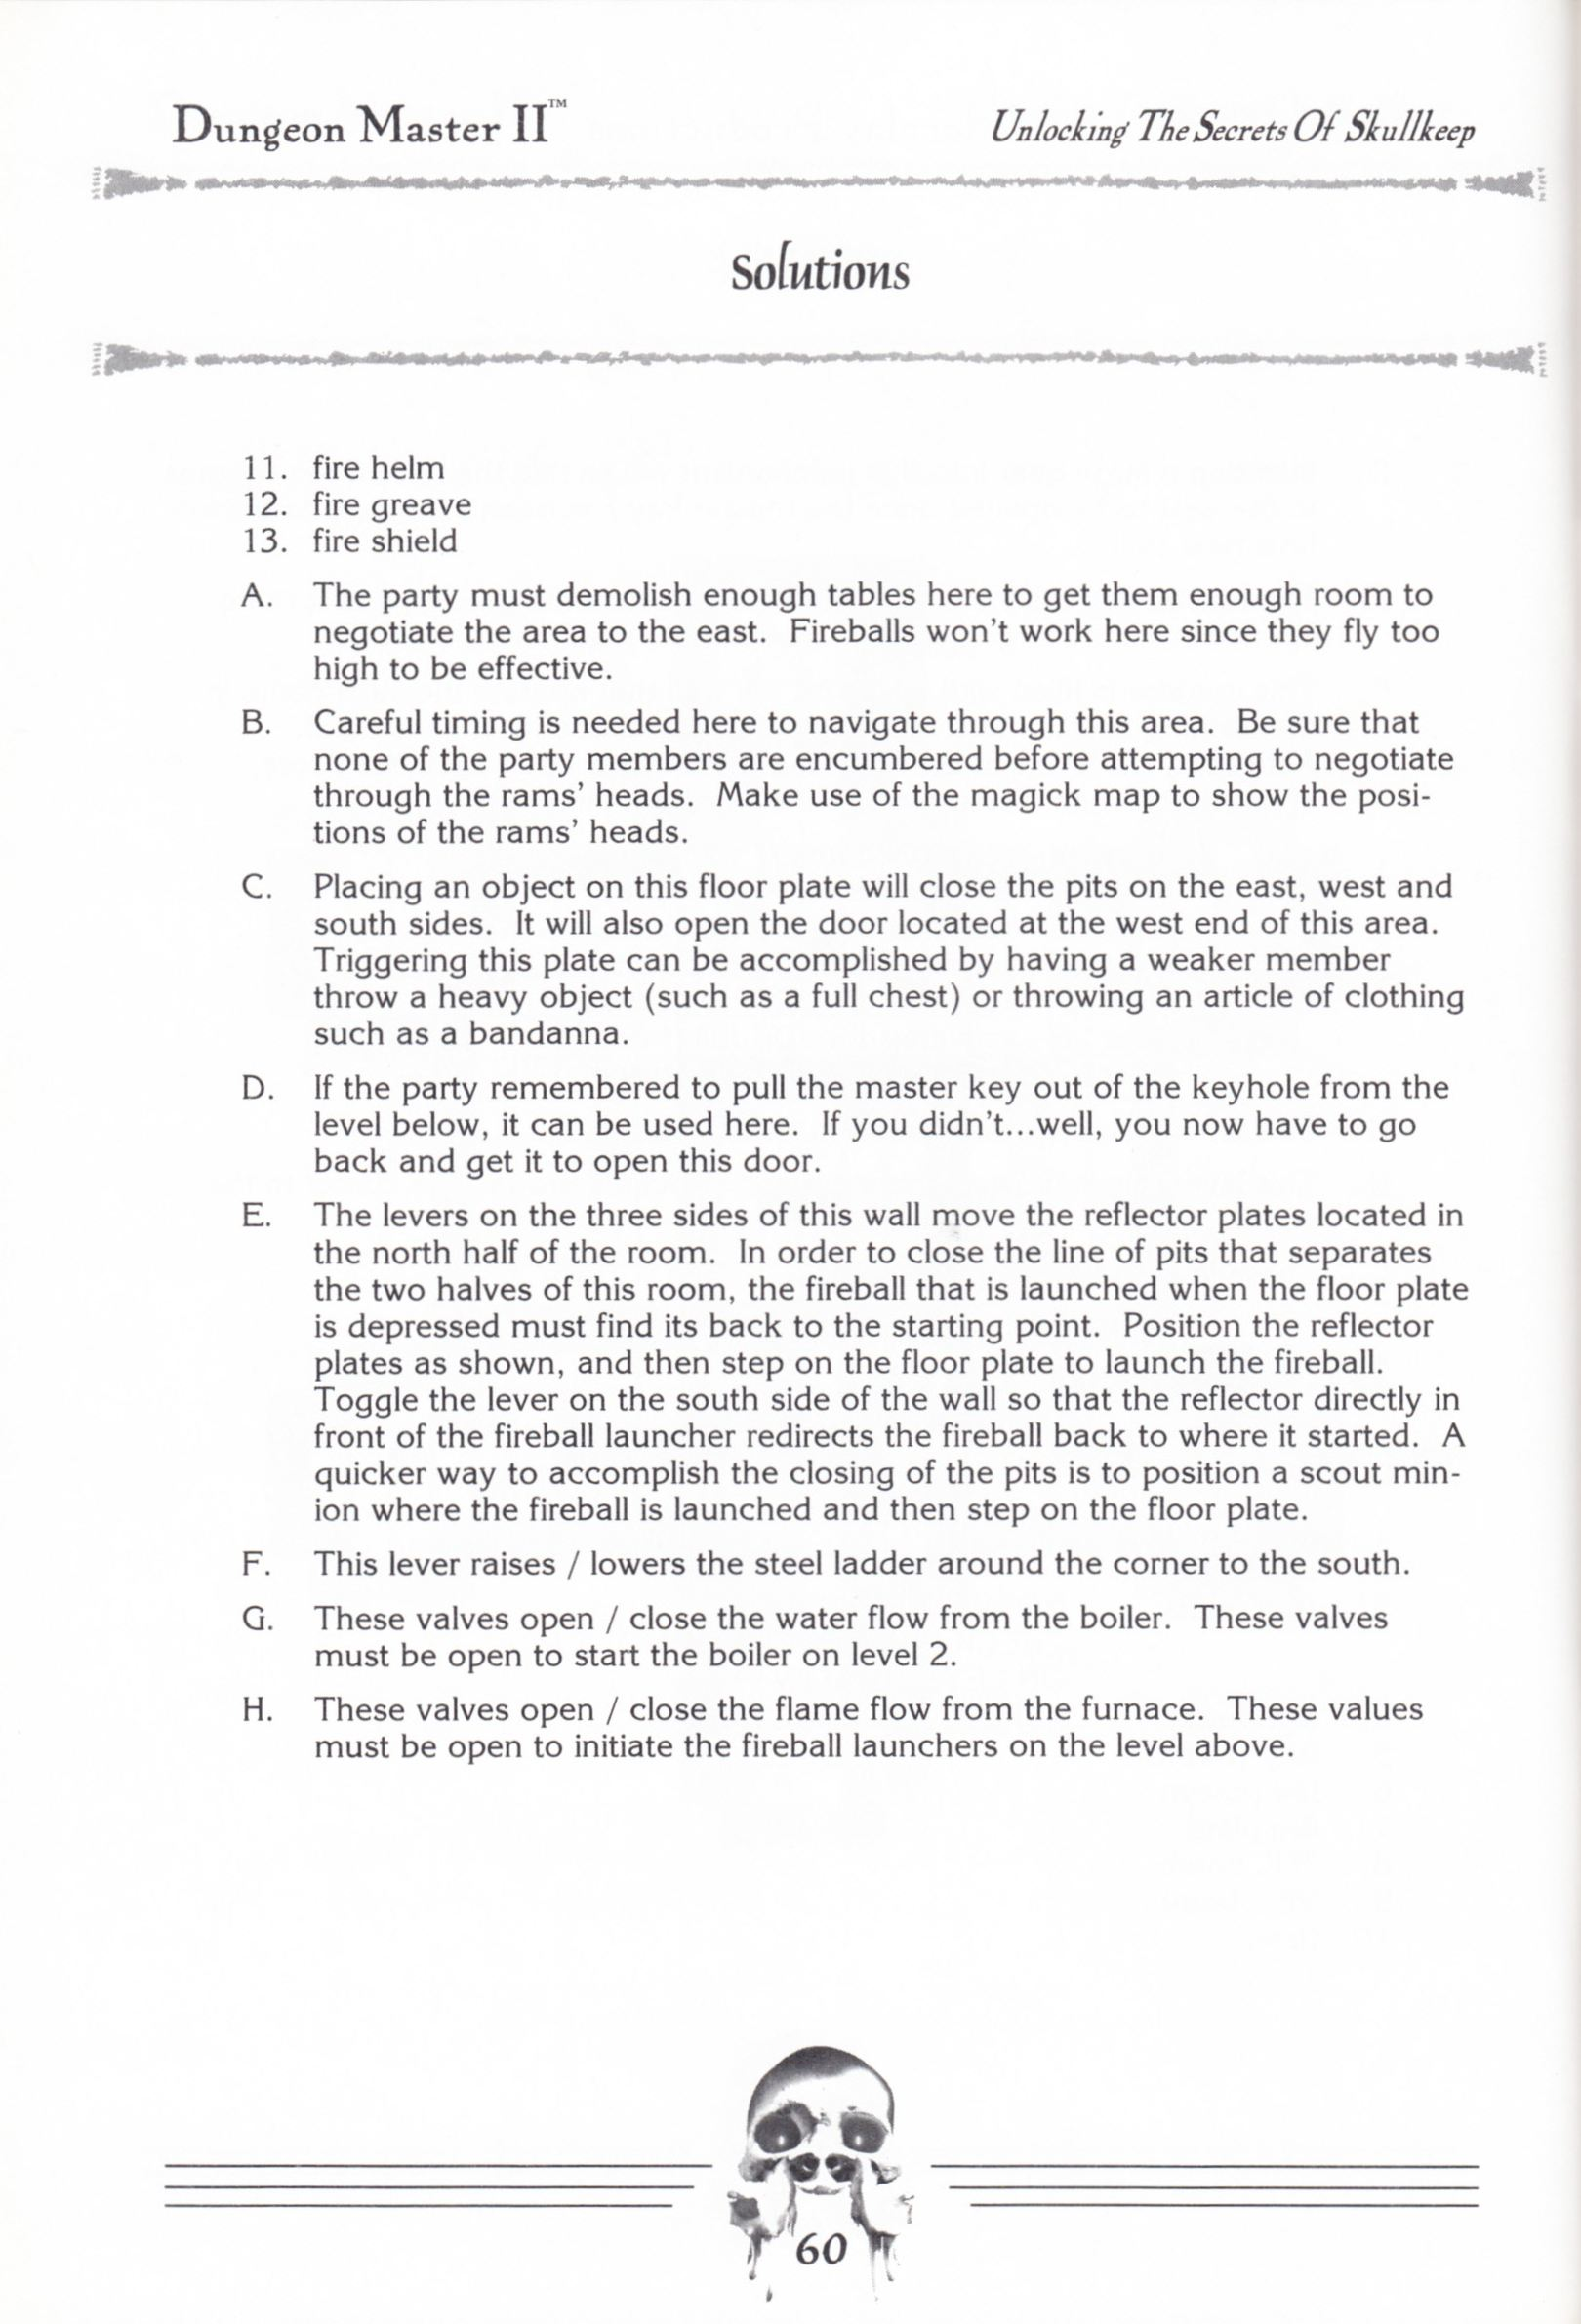 Hint Book - Dungeon Master II Clue Book - US - Page 062 - Scan